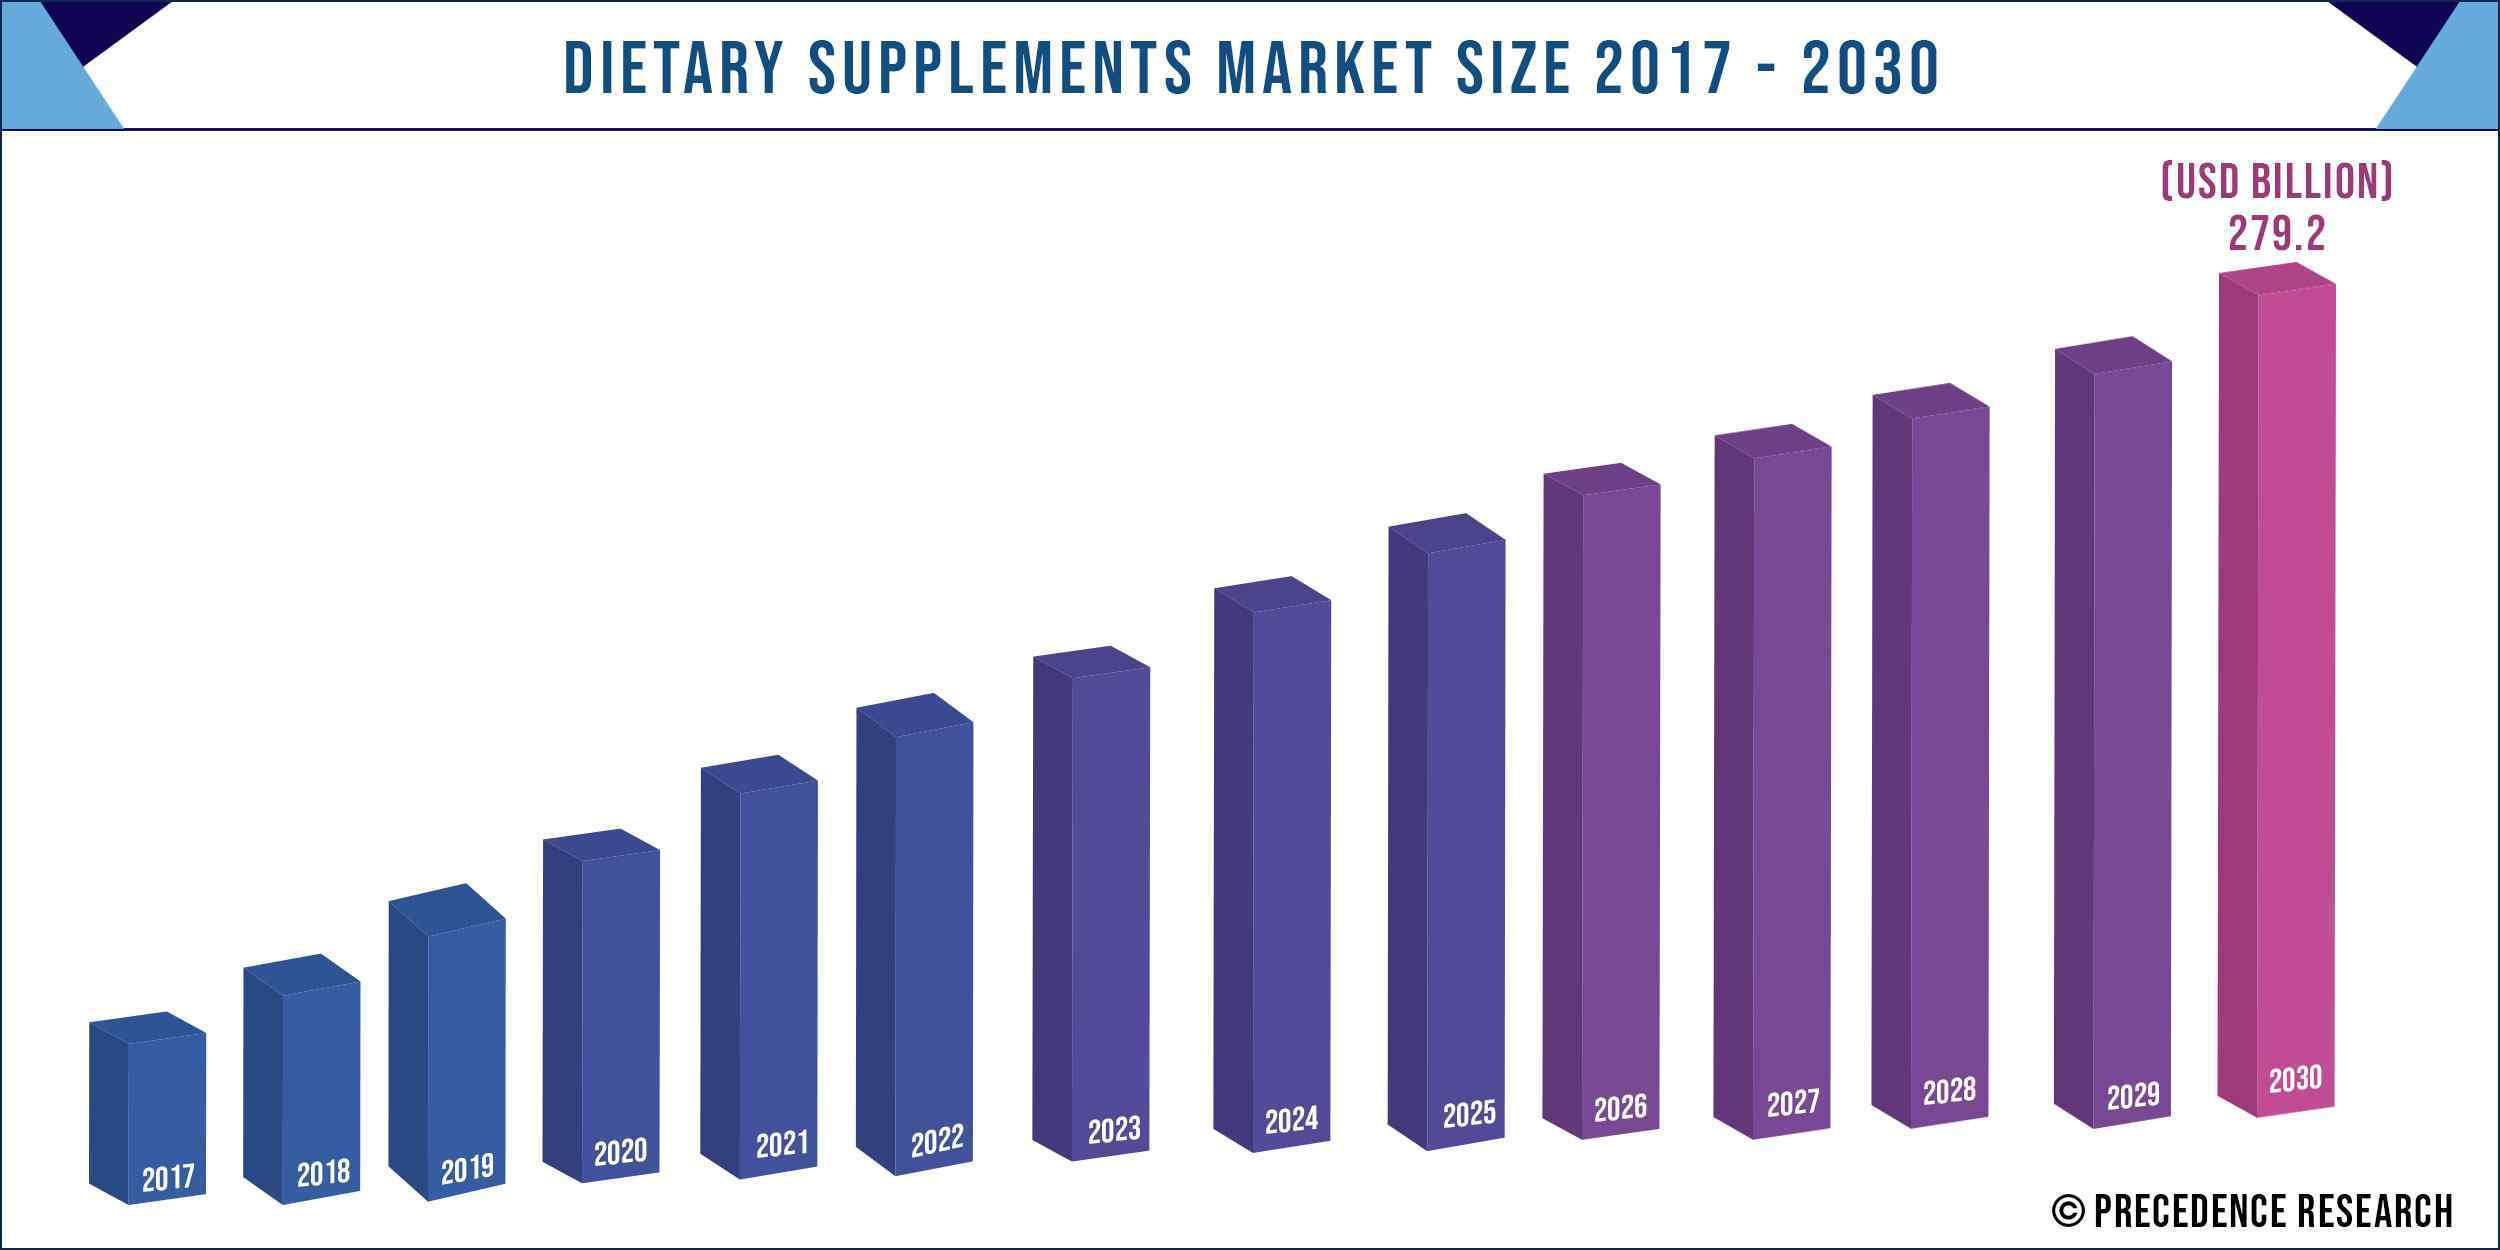 Dietary Supplements Market Size 2017 to 2030